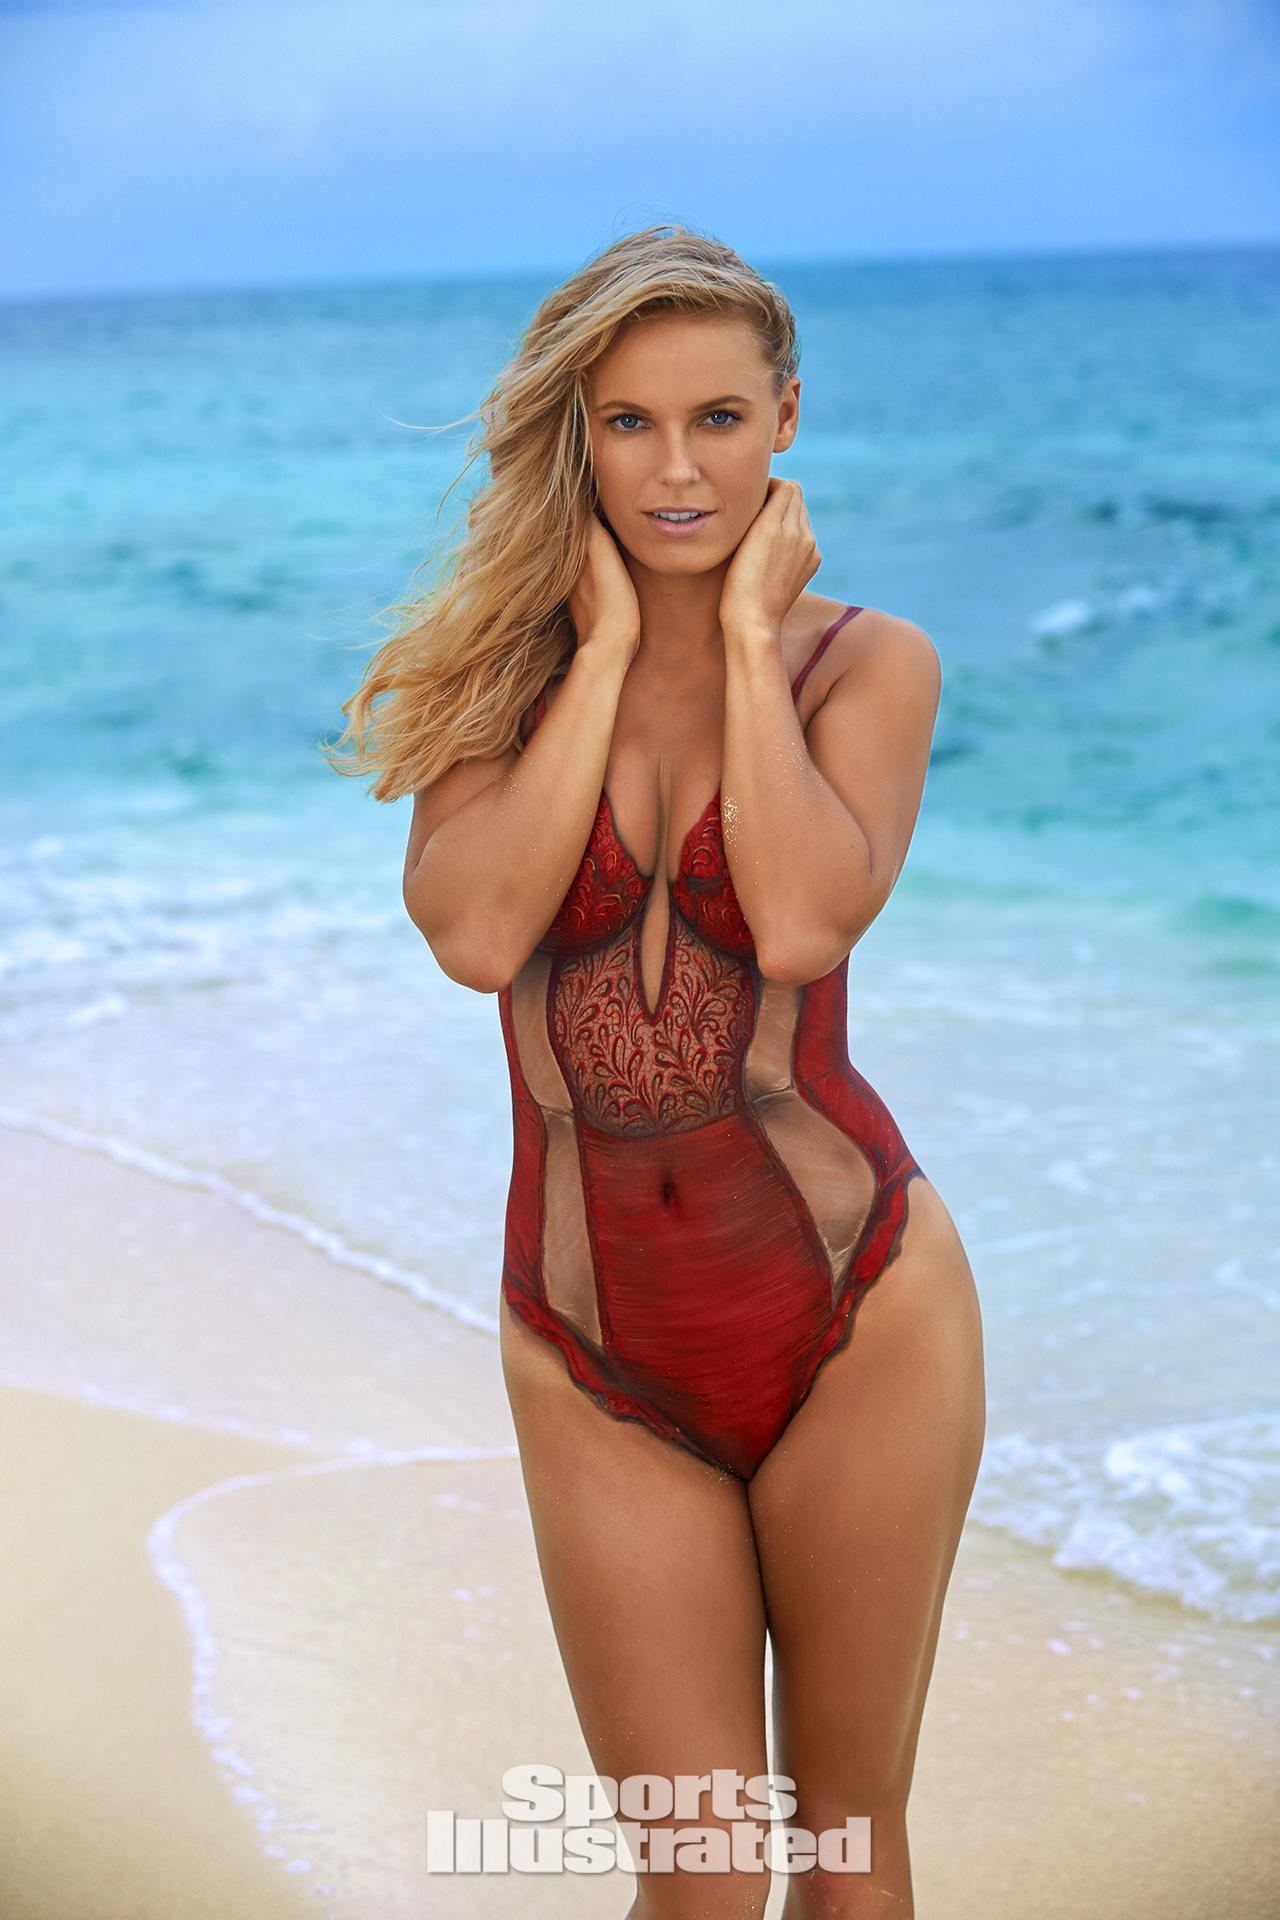 ... Wozniacki Swimsuit Body Paint Photos, Sports Illustrated Swimsuit 2016